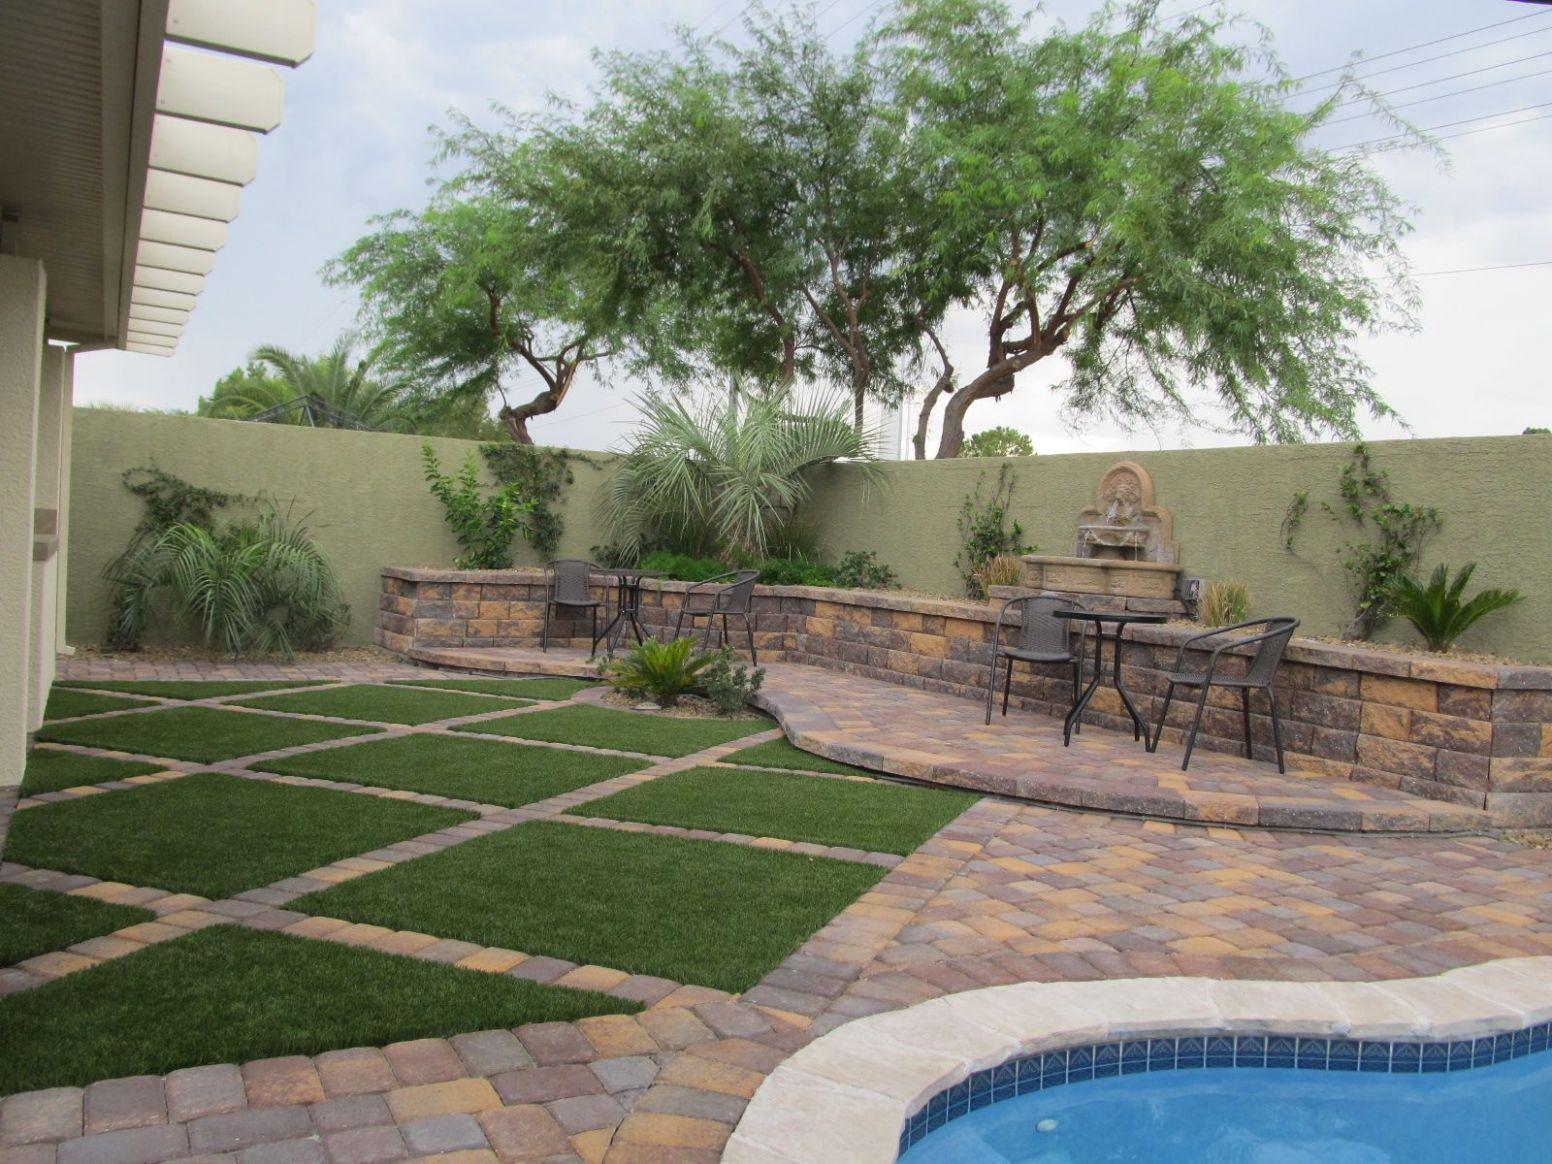 Las Vegas Backyard Landscaping (With images) | Desert landscaping ...